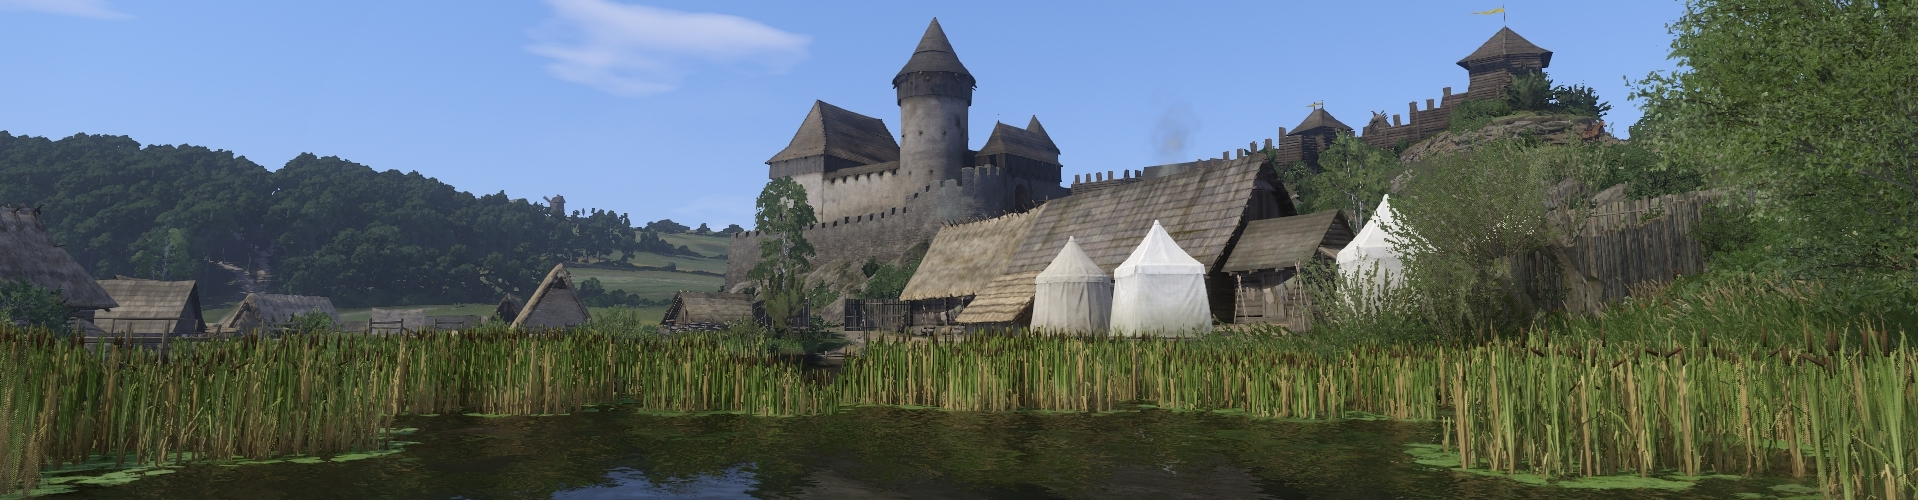 Kingdom Come Deliverance: Video zur Beta zeigt Lichteffekte und Wettersimulation